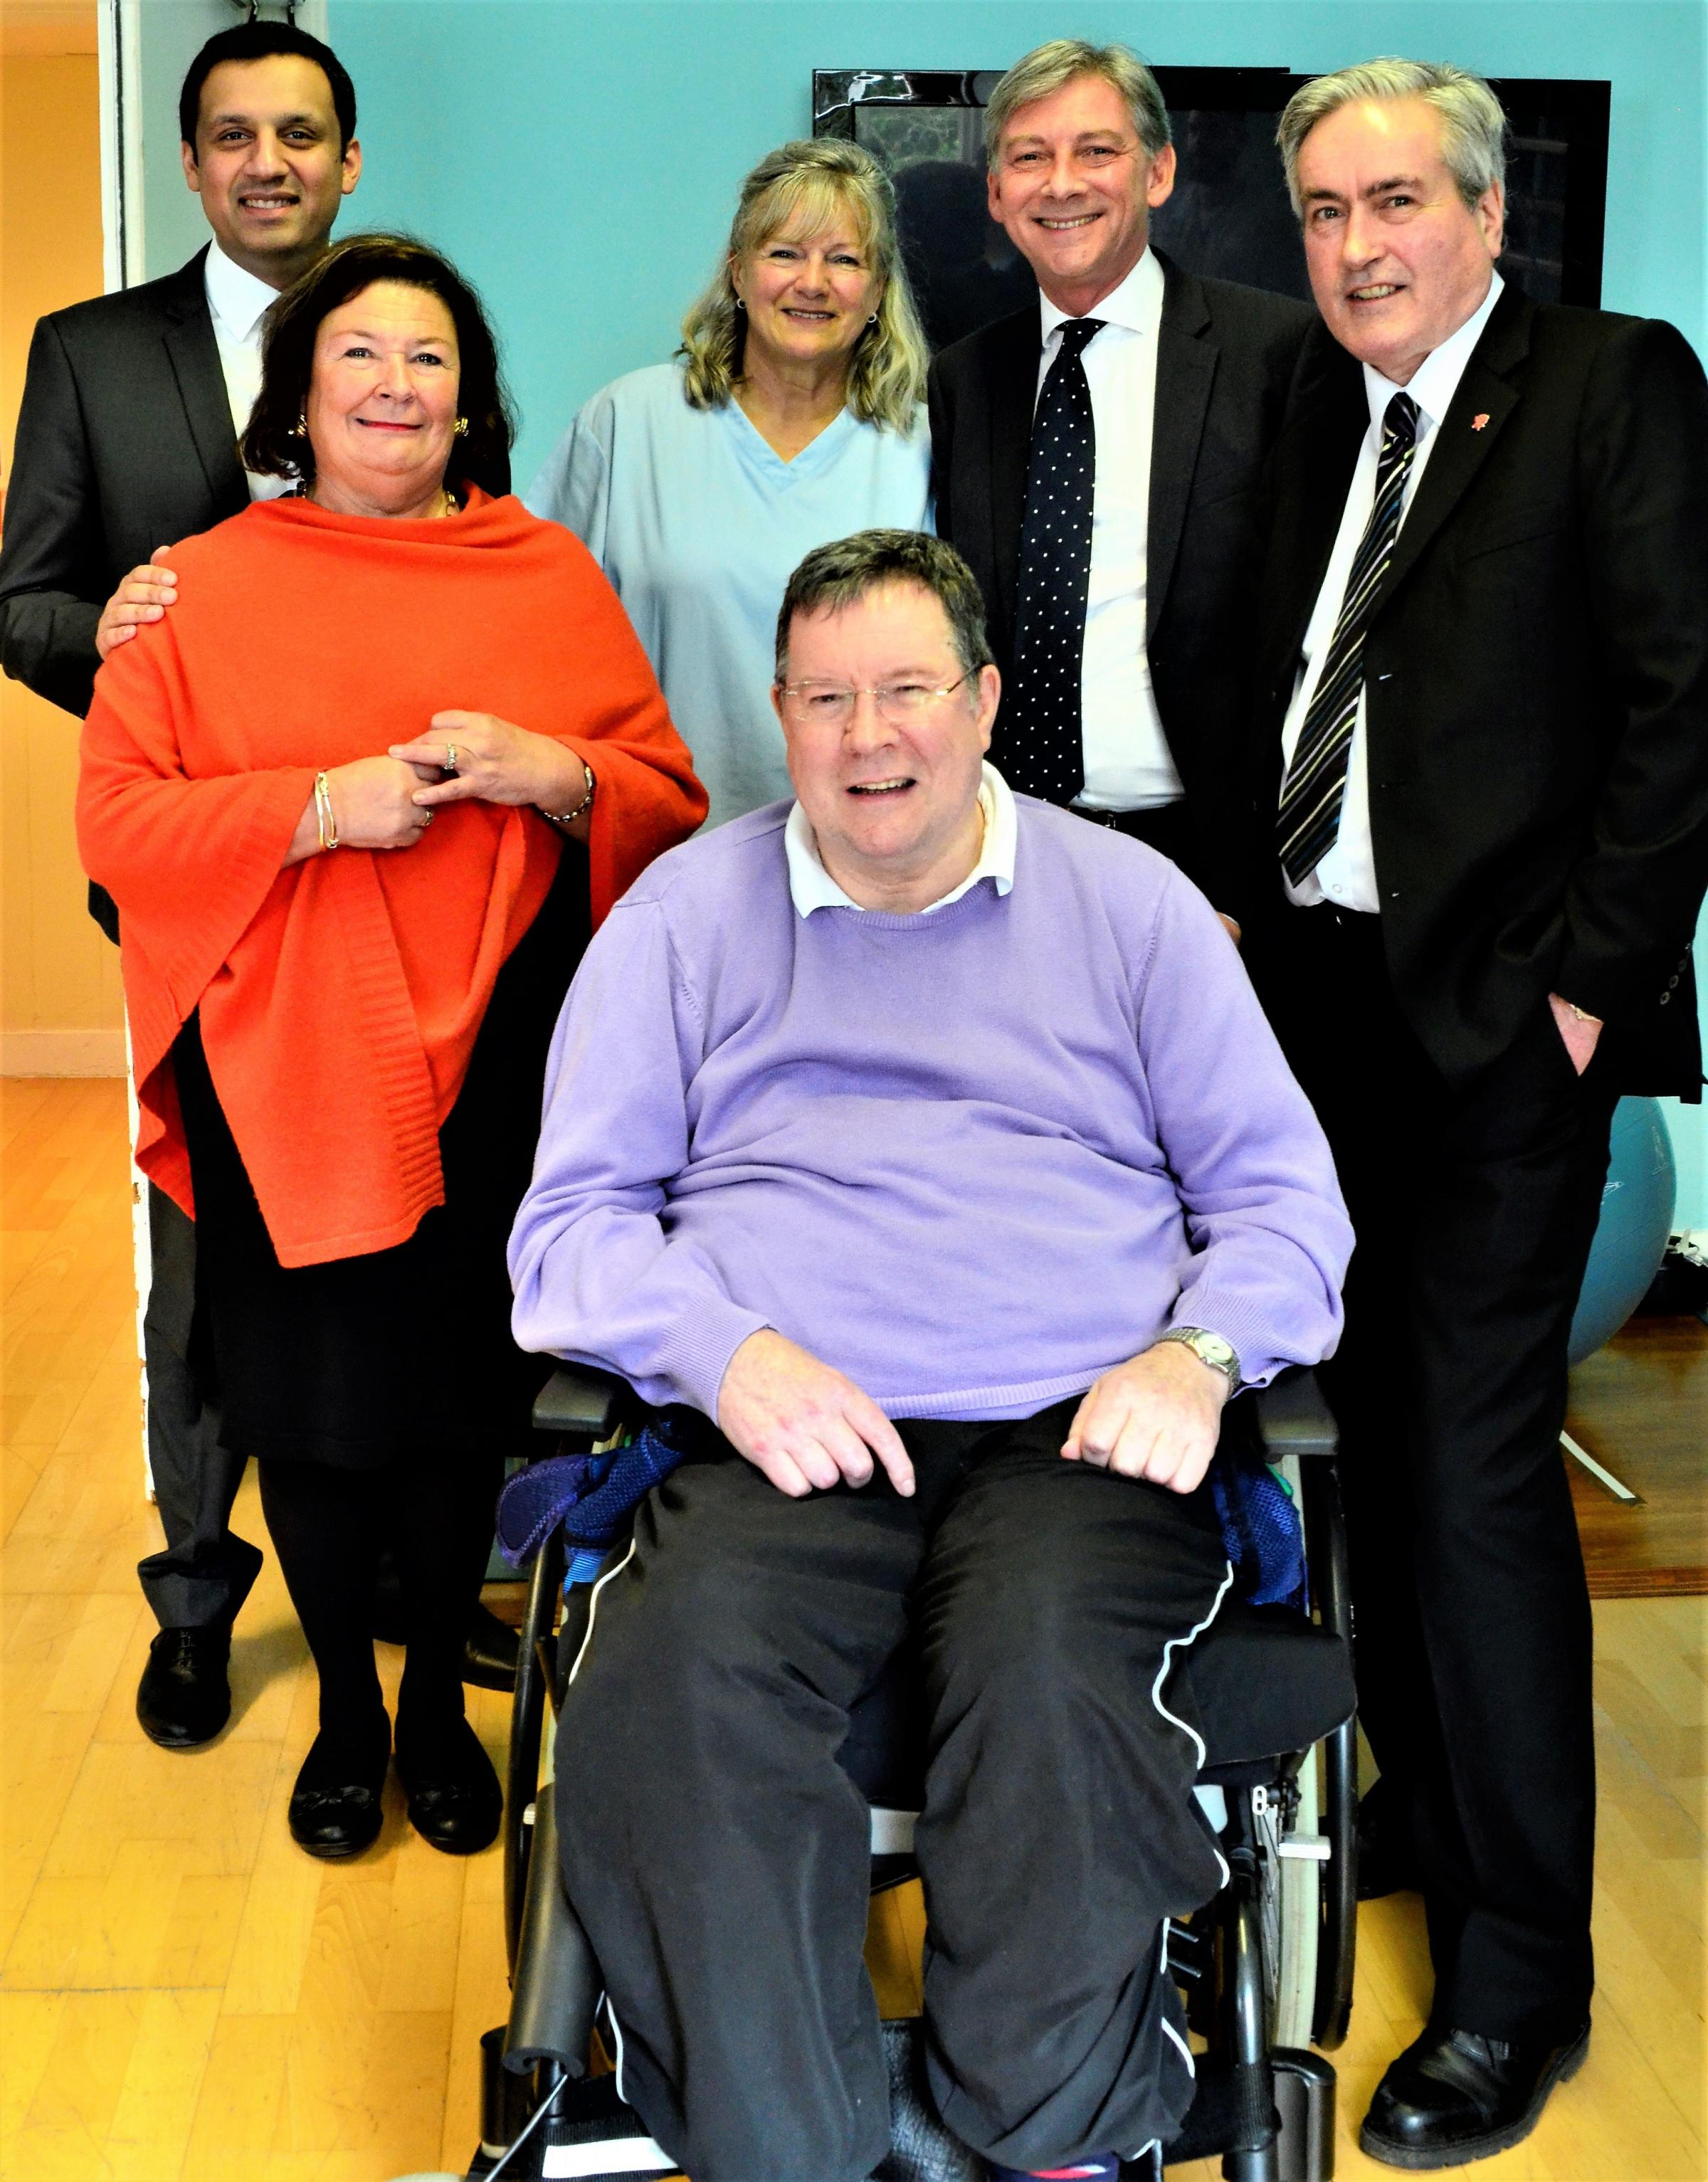 Scottish Labour leader Richard Leonard, Anas Sarwar MSP and local MSP Iain Gray visited Leuchie House